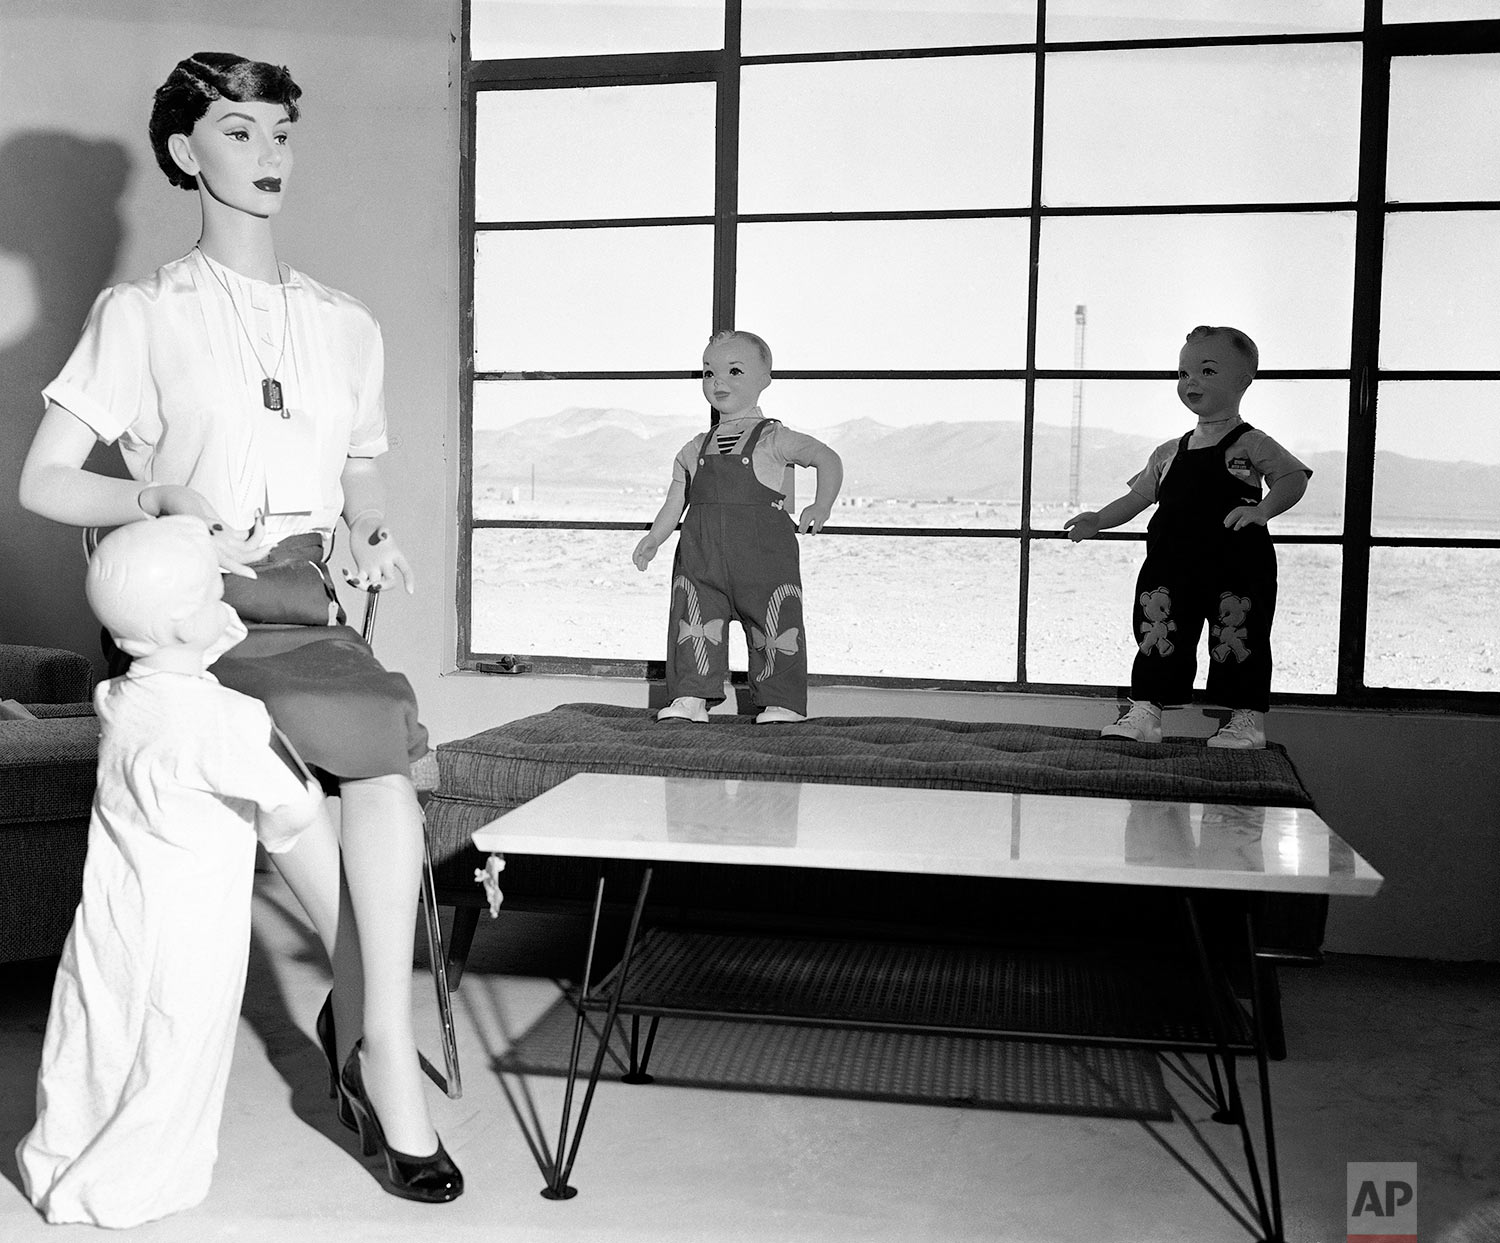 Mannequins that represent a typical American family, will soon experience the fury of an atomic blast with the power of 40,000 tons of TNT, at Yucca Flats, Nev., April, 24, 1955. The test is being conducted to determine the survival chances of an atomic attack. Through the picture window is the tower 4700 feet away on which the detonation will occur. (AP Photo/Dick Strobel)